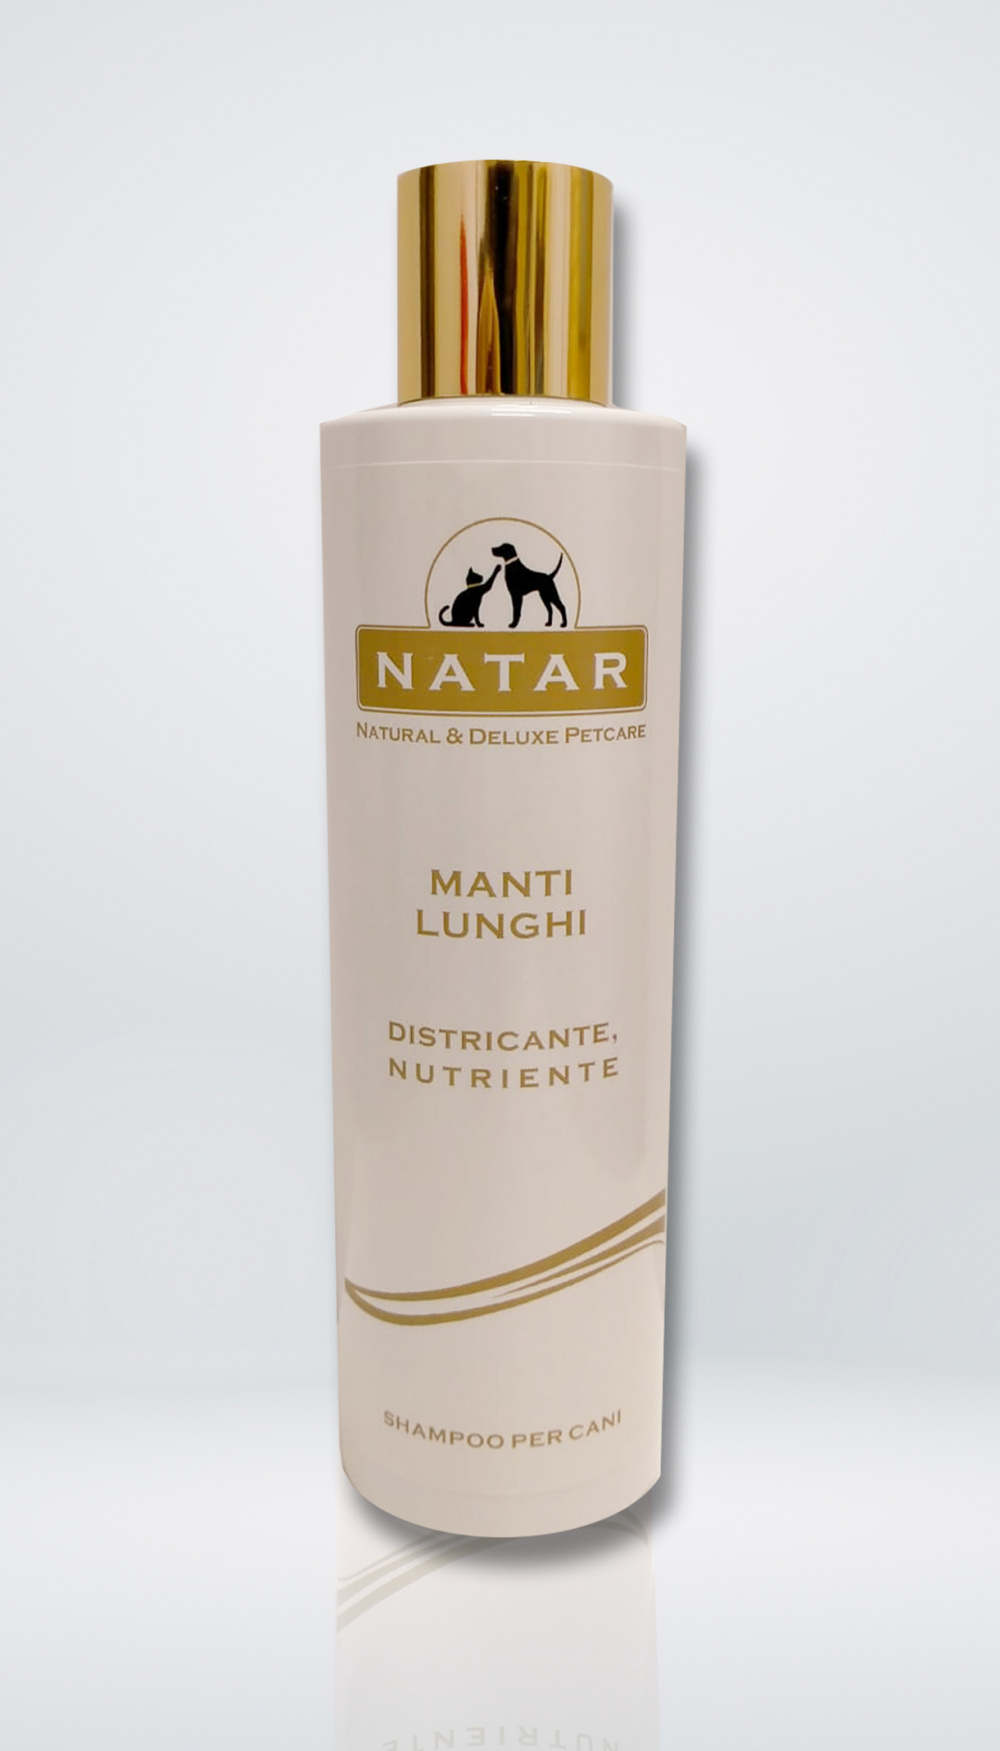 Natar Shampoo for dogs with long fur